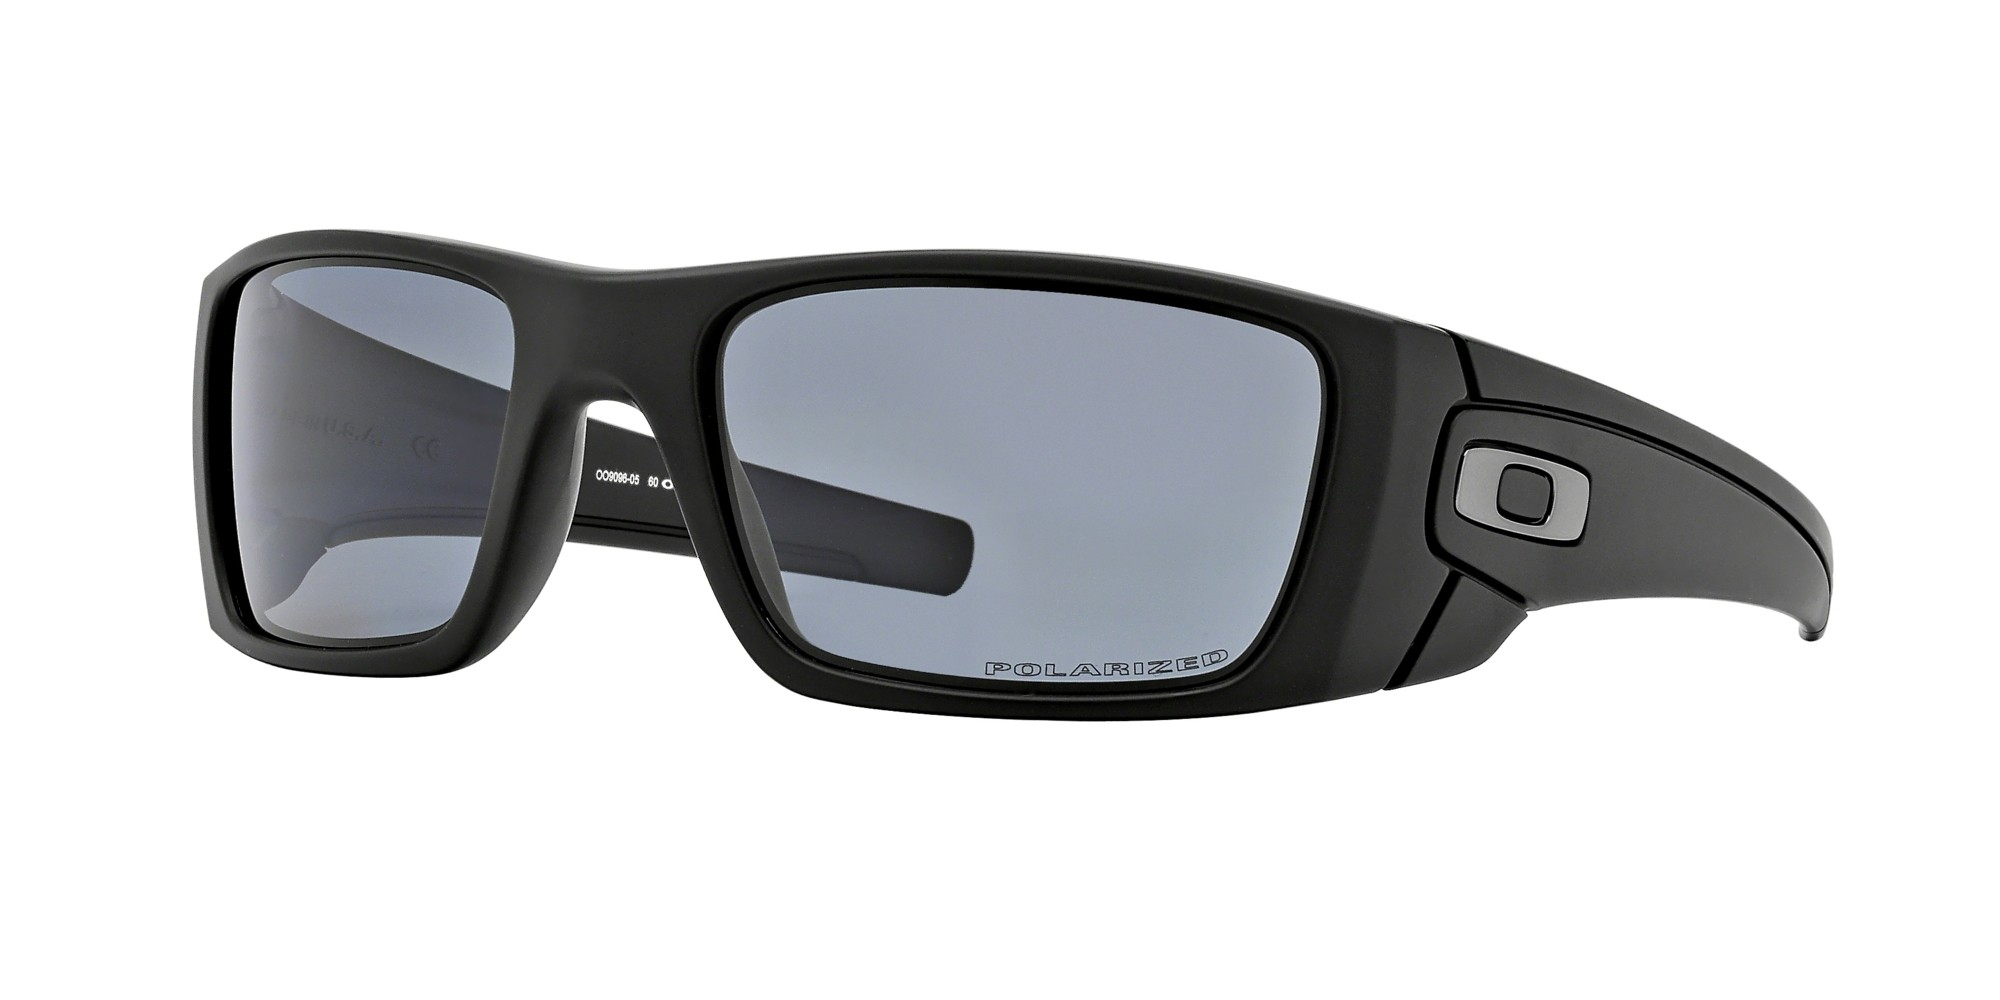 f5af06a71b Authentic Oakley Fuel Cell Prescription Sunglasses